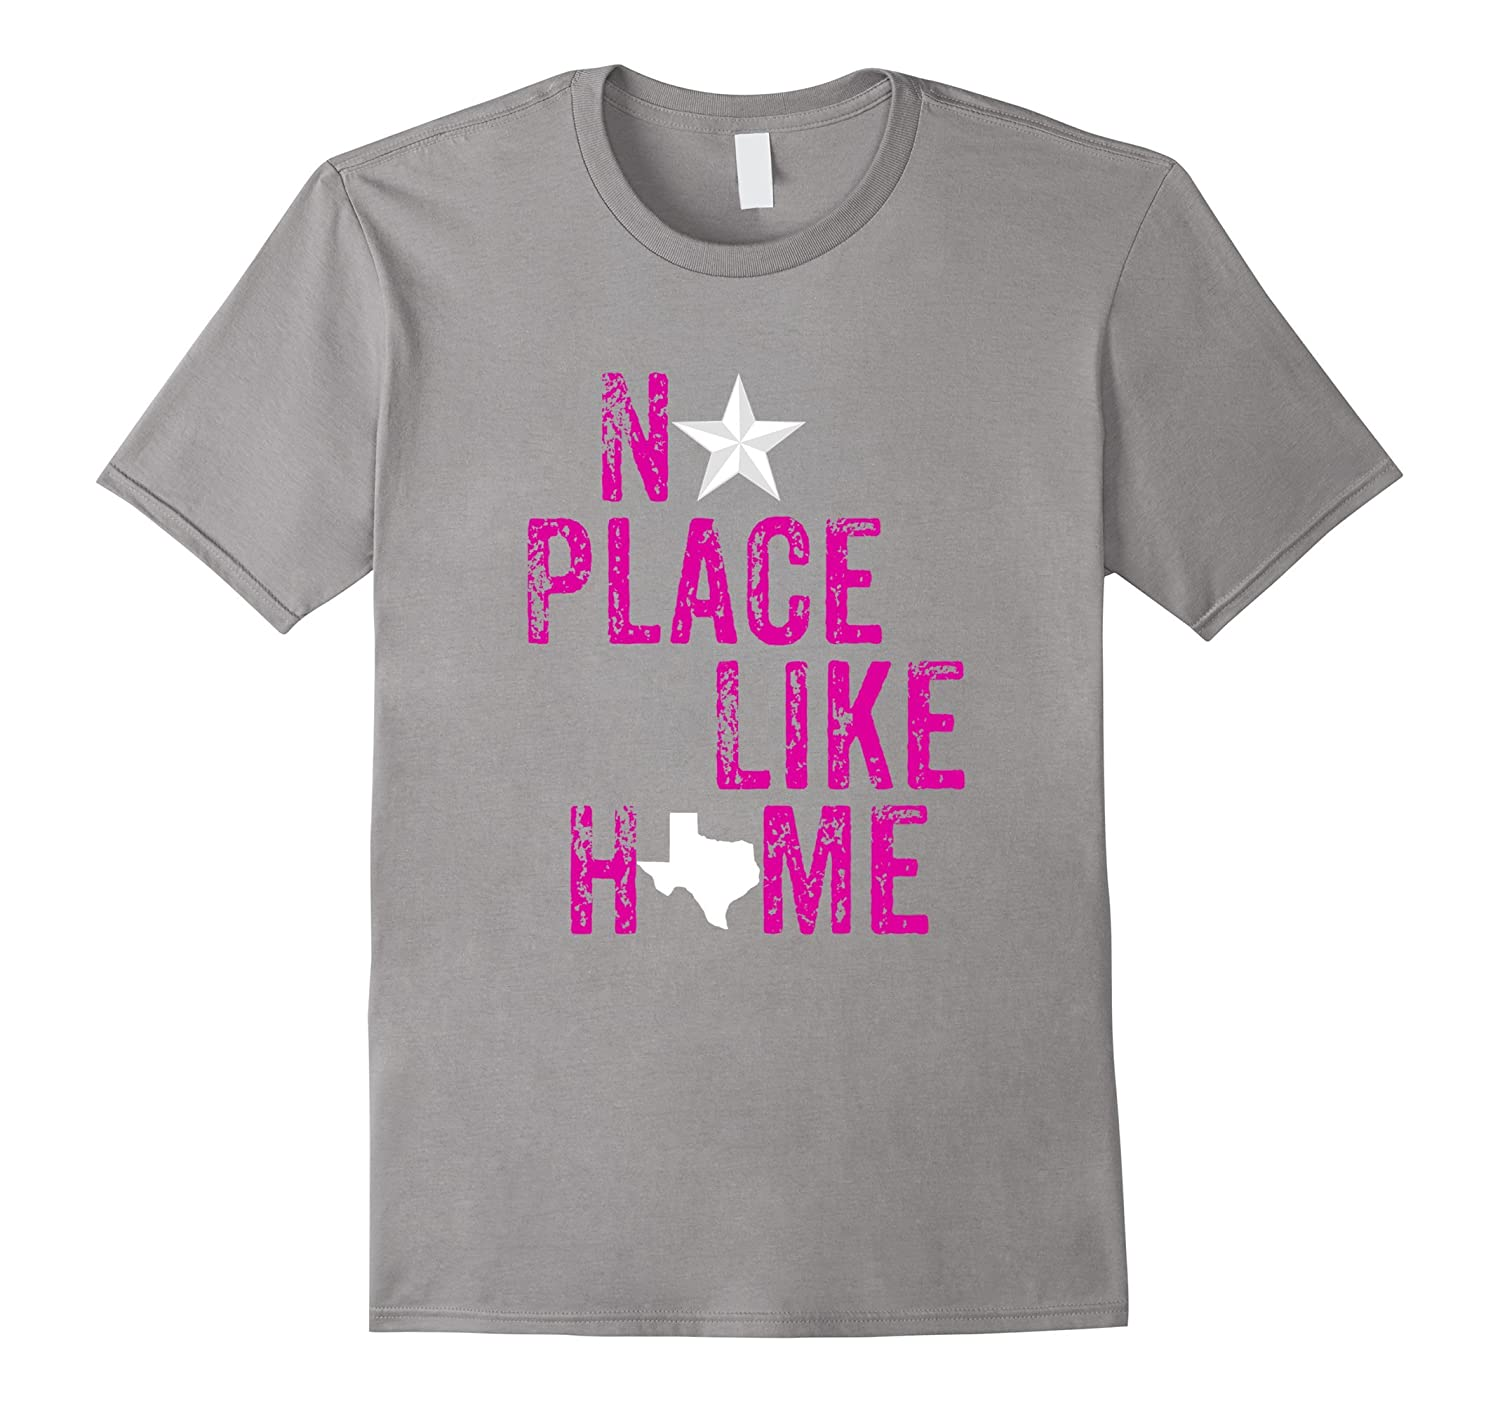 Awesome No Place Like Home T-shirt For Fans Of Texas PNK-FL